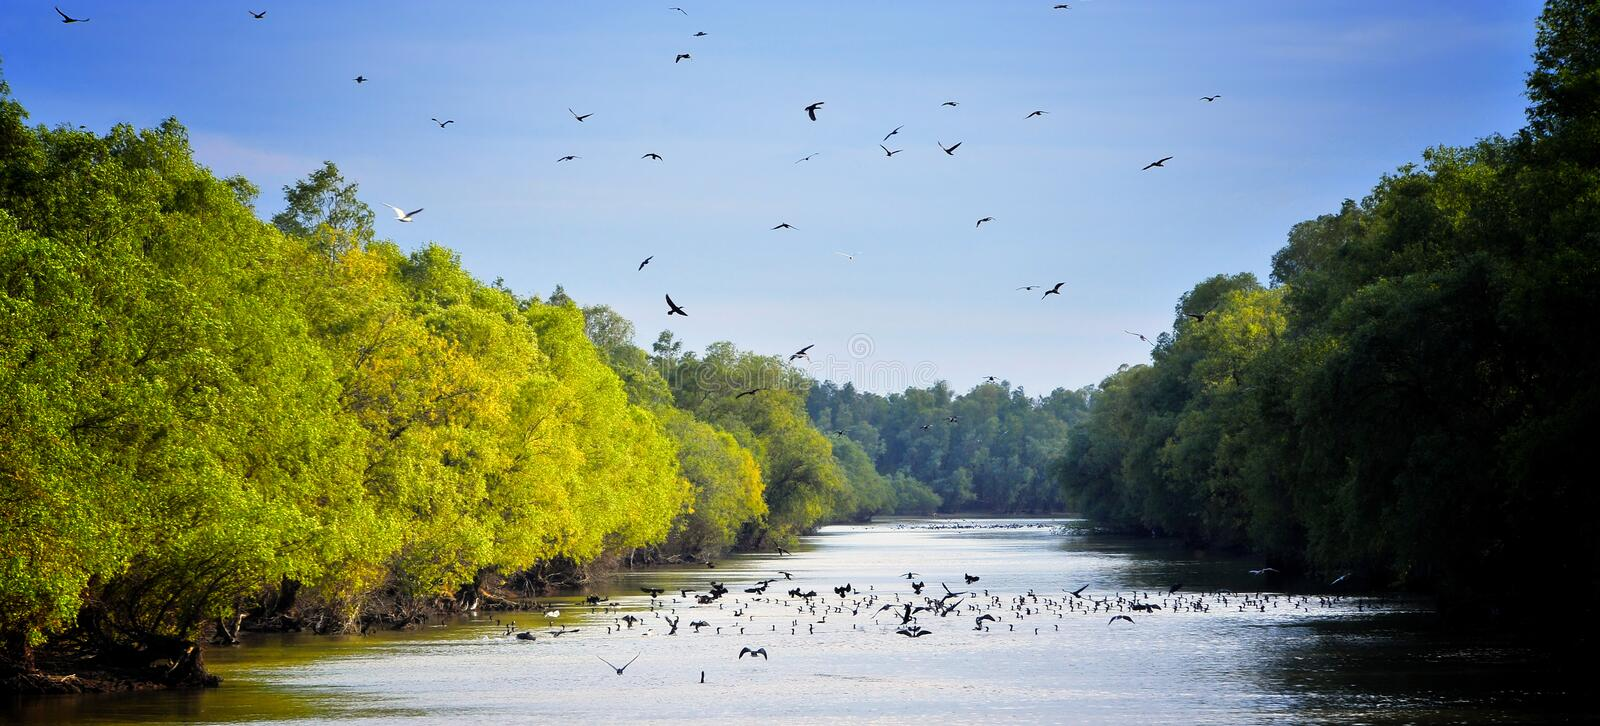 Danube Delta Landscape. With birds